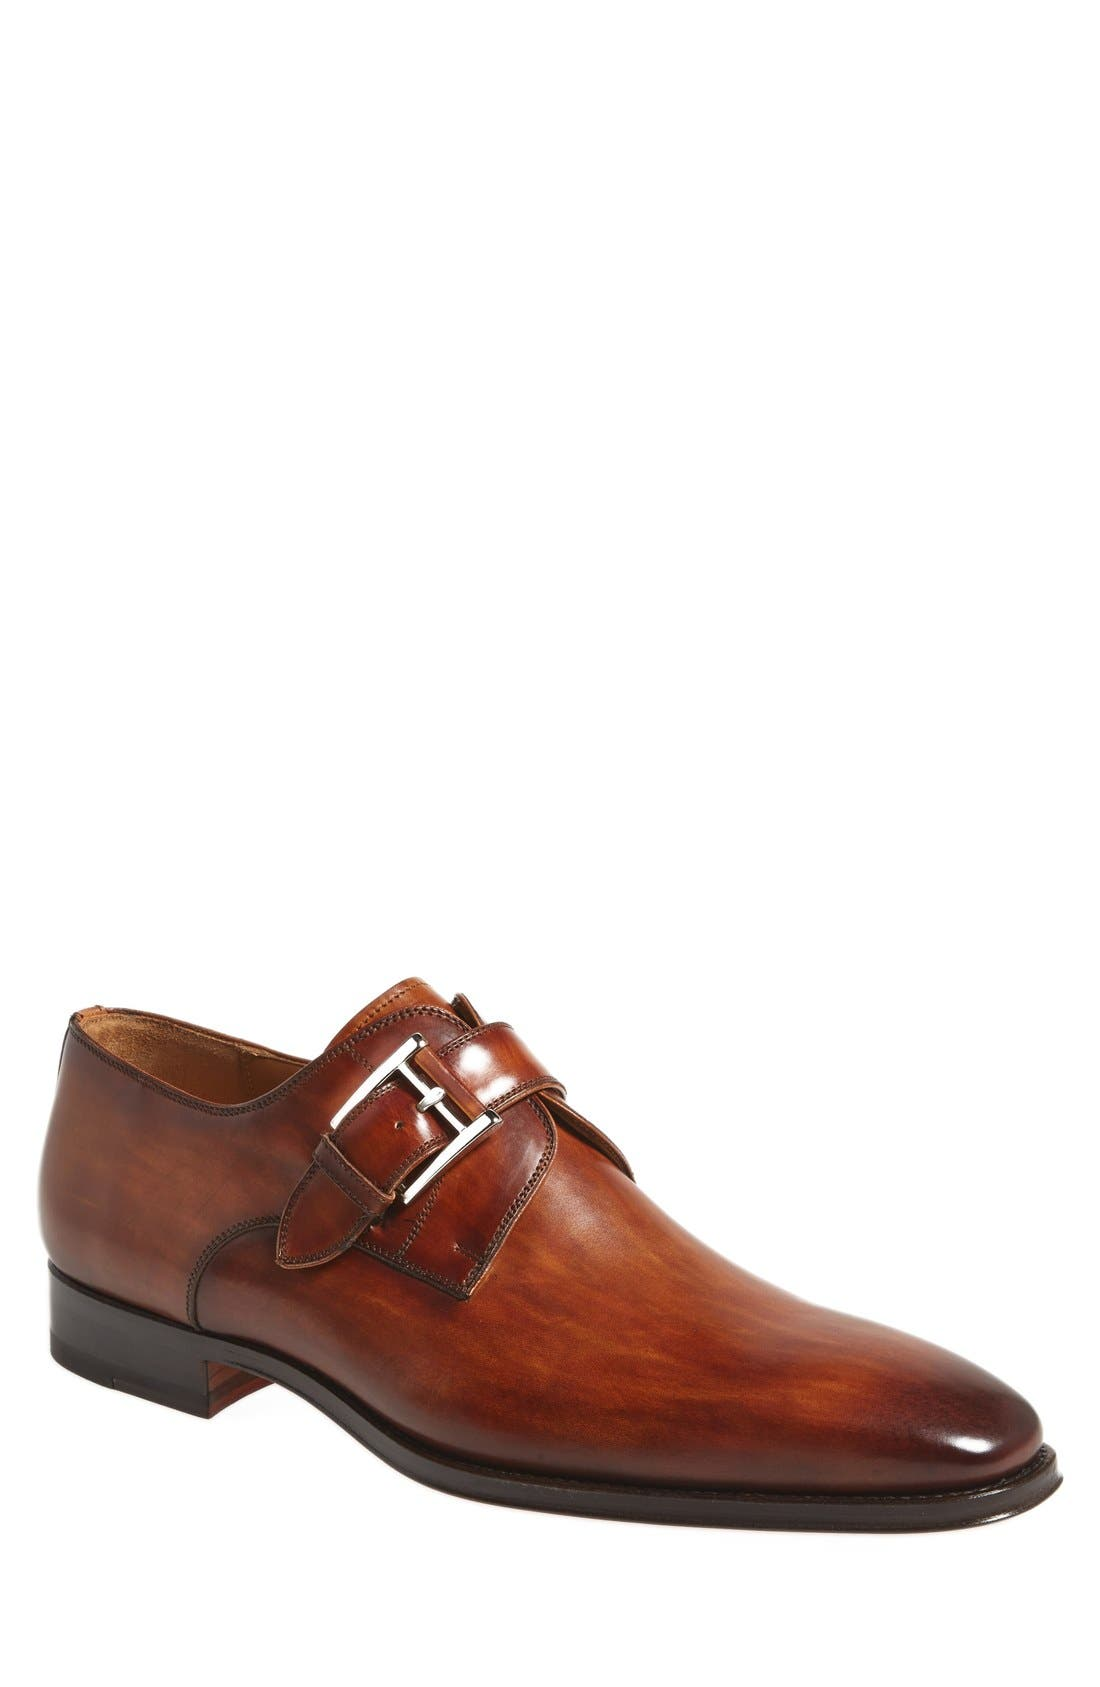 MAGNANNI, Marco Monk Strap Loafer, Main thumbnail 1, color, CUERO BROWN LEATHER